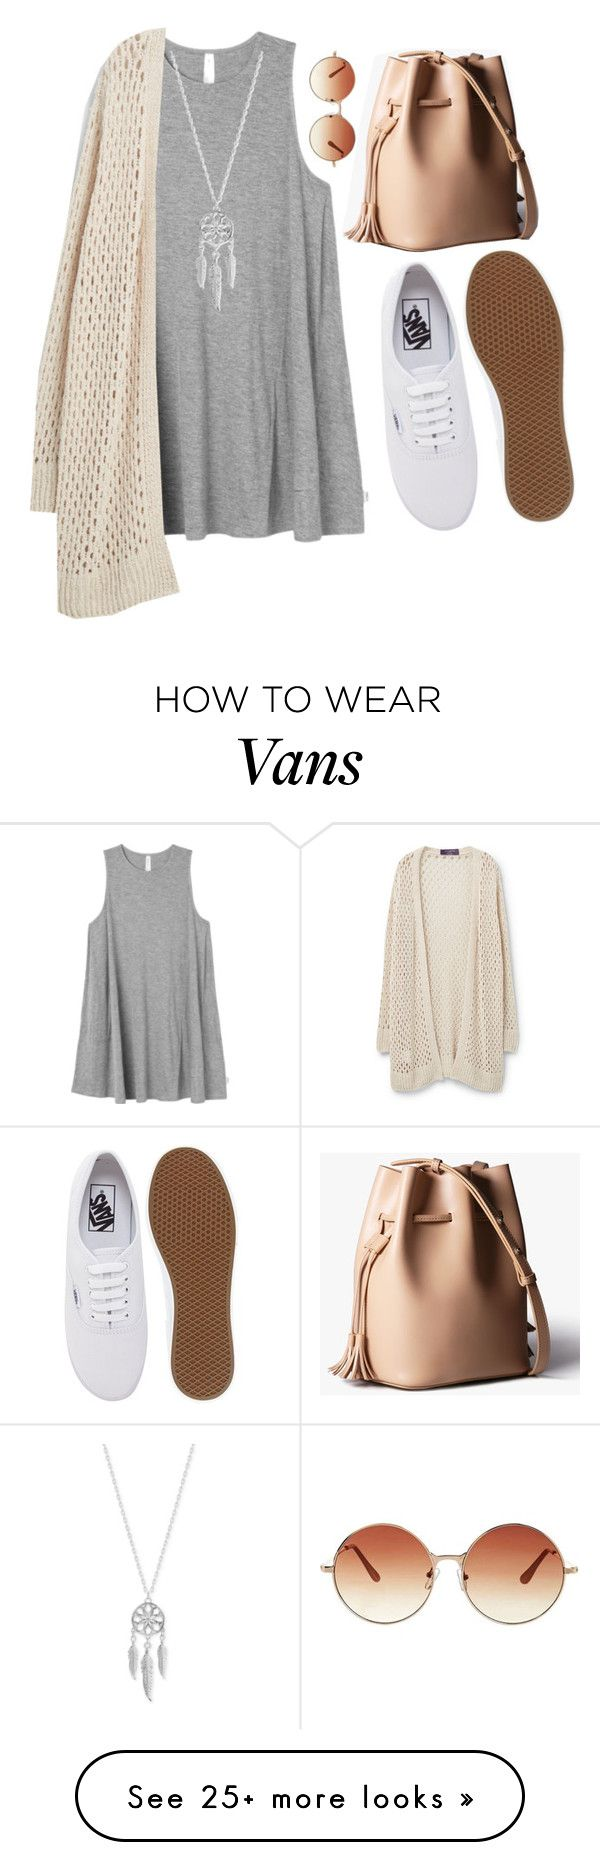 """""""Dress and vans... Hm...It is look like interesting!"""" by slenderman-o on Polyvore featuring RVCA, Violeta by Mango, Vans, Topshop and Lucky Brand"""